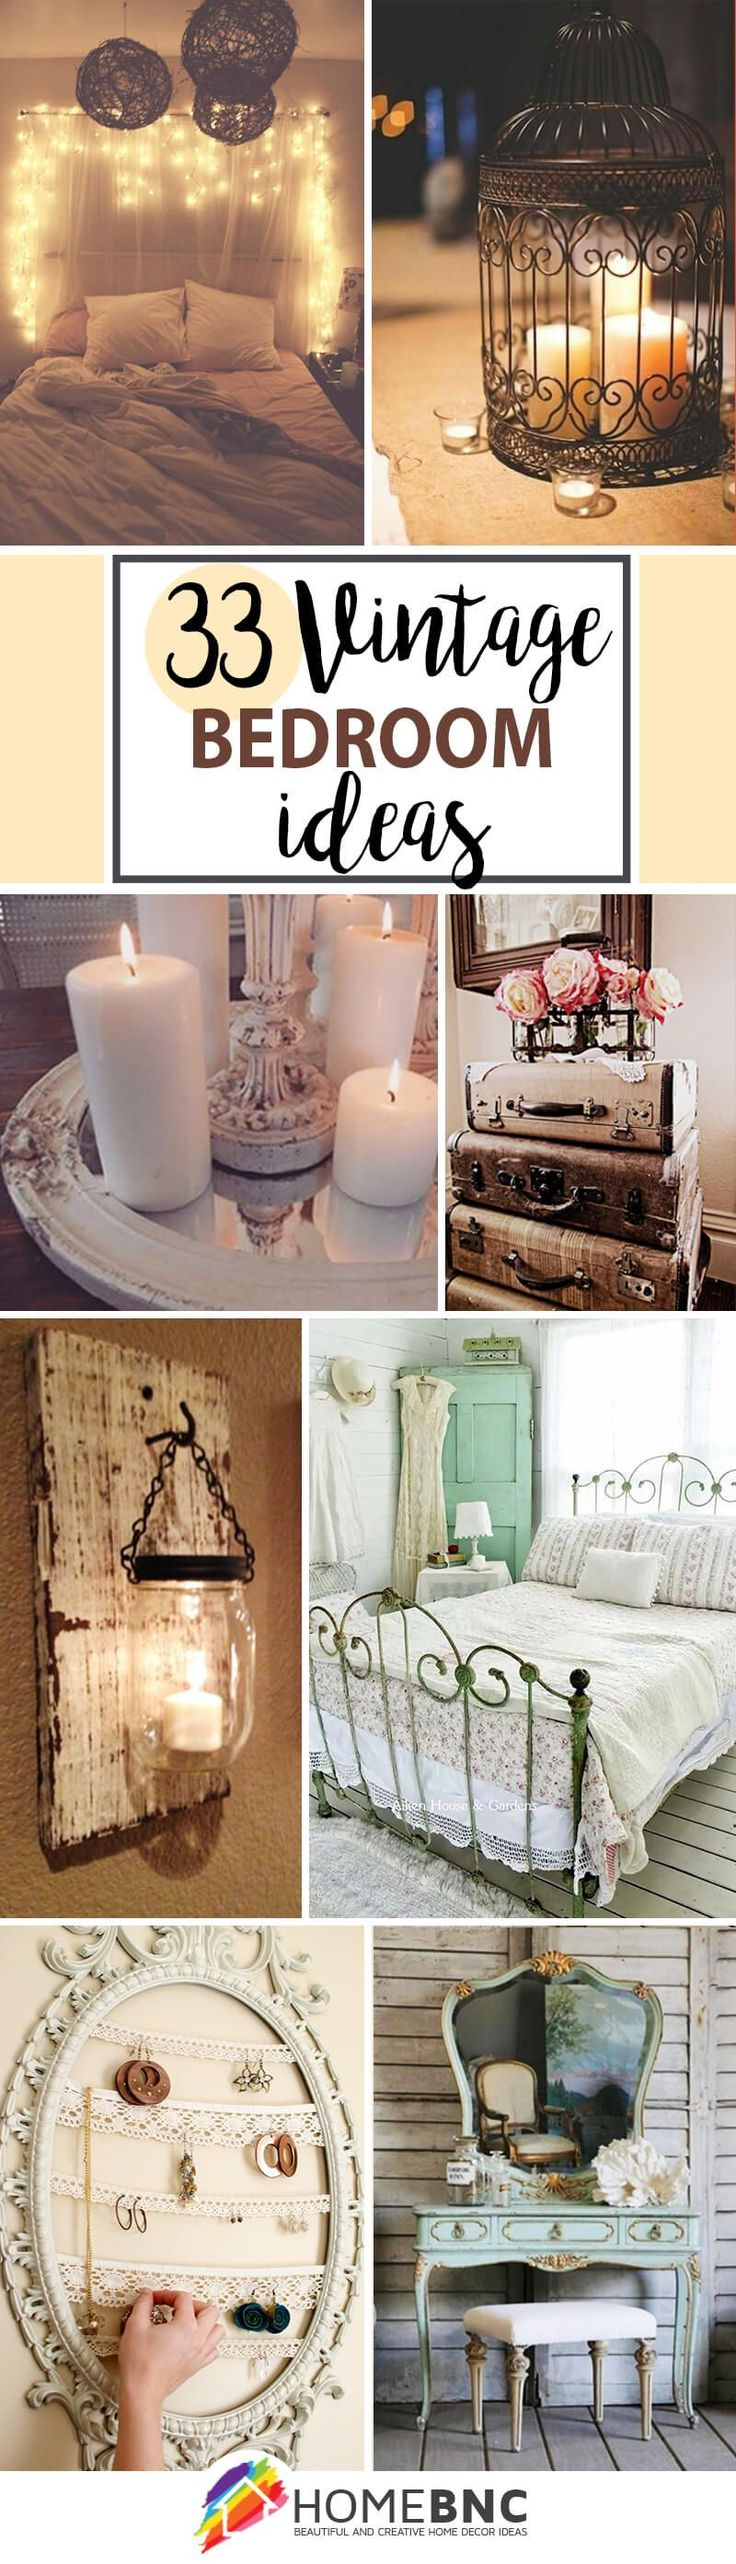 best 25+ vintage bedroom decor ideas on pinterest